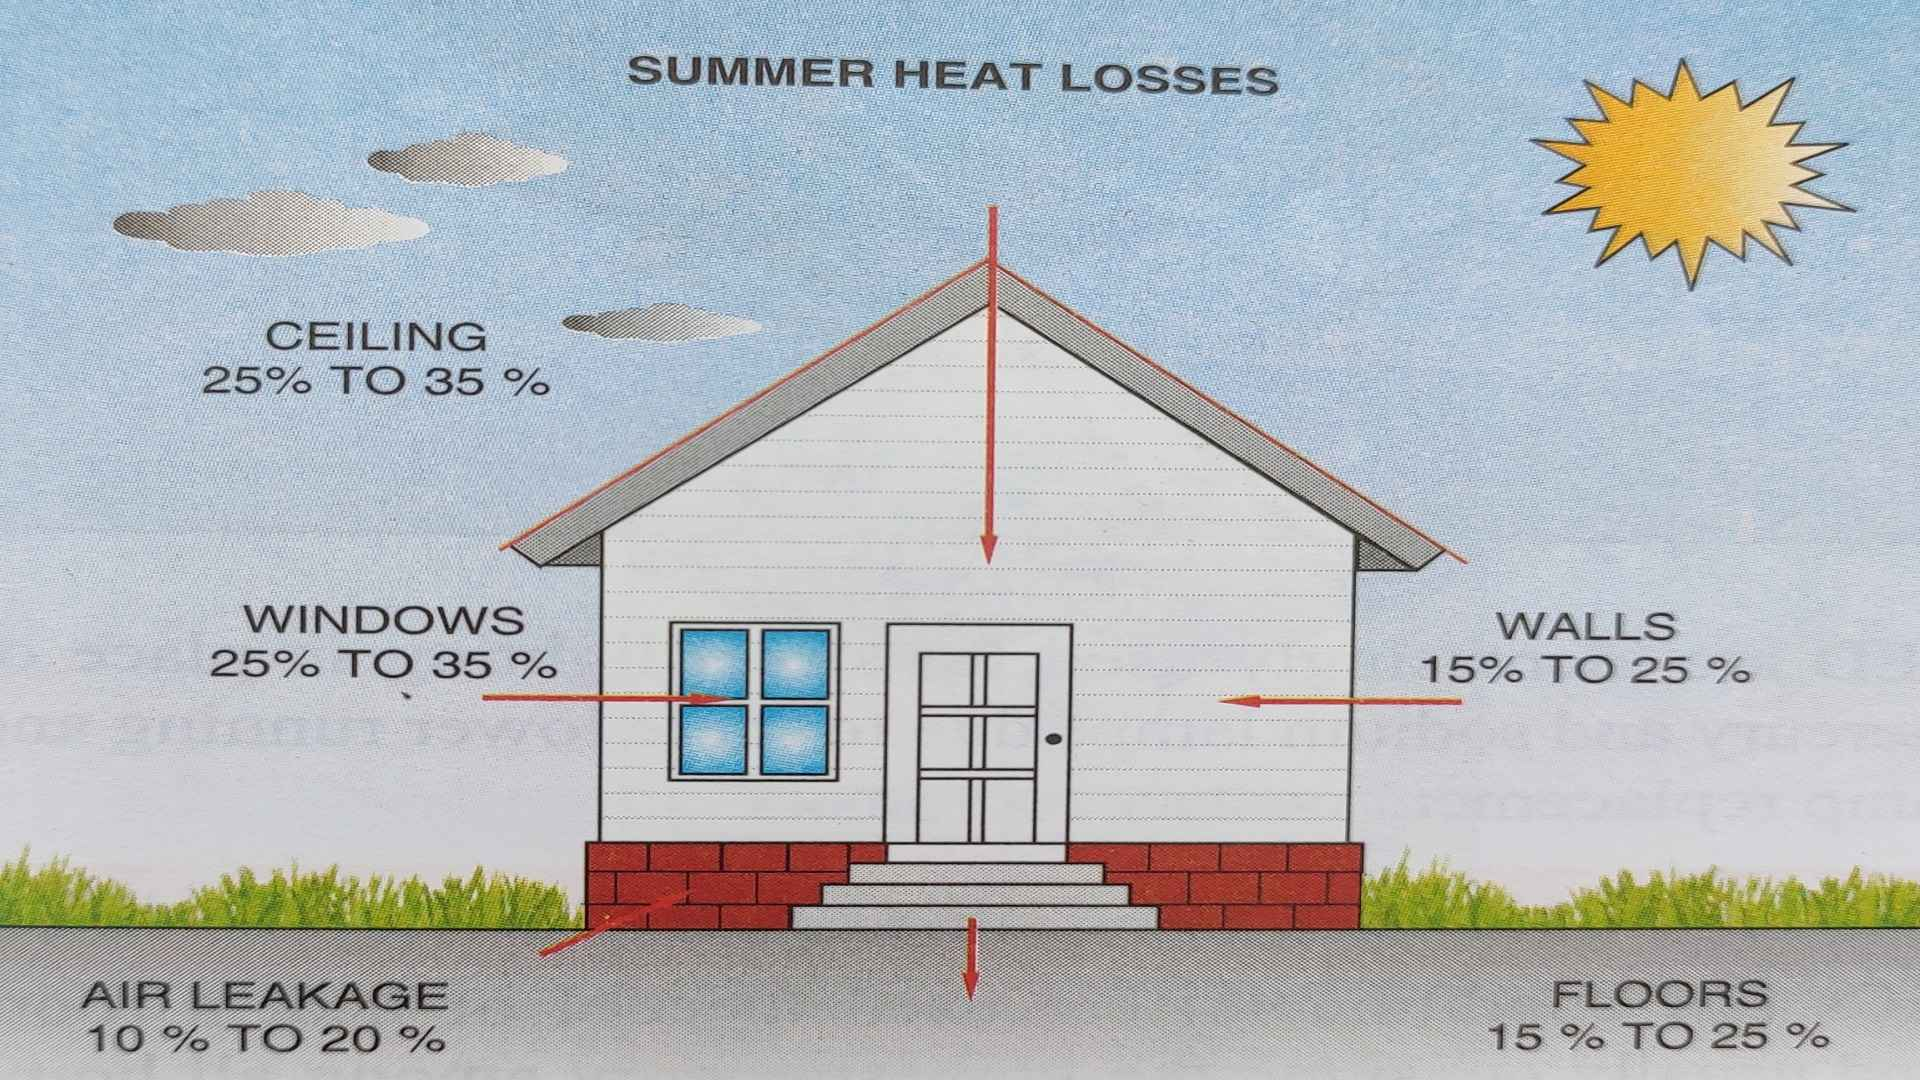 Heat losses and gains without insulation in a temperature climates summer